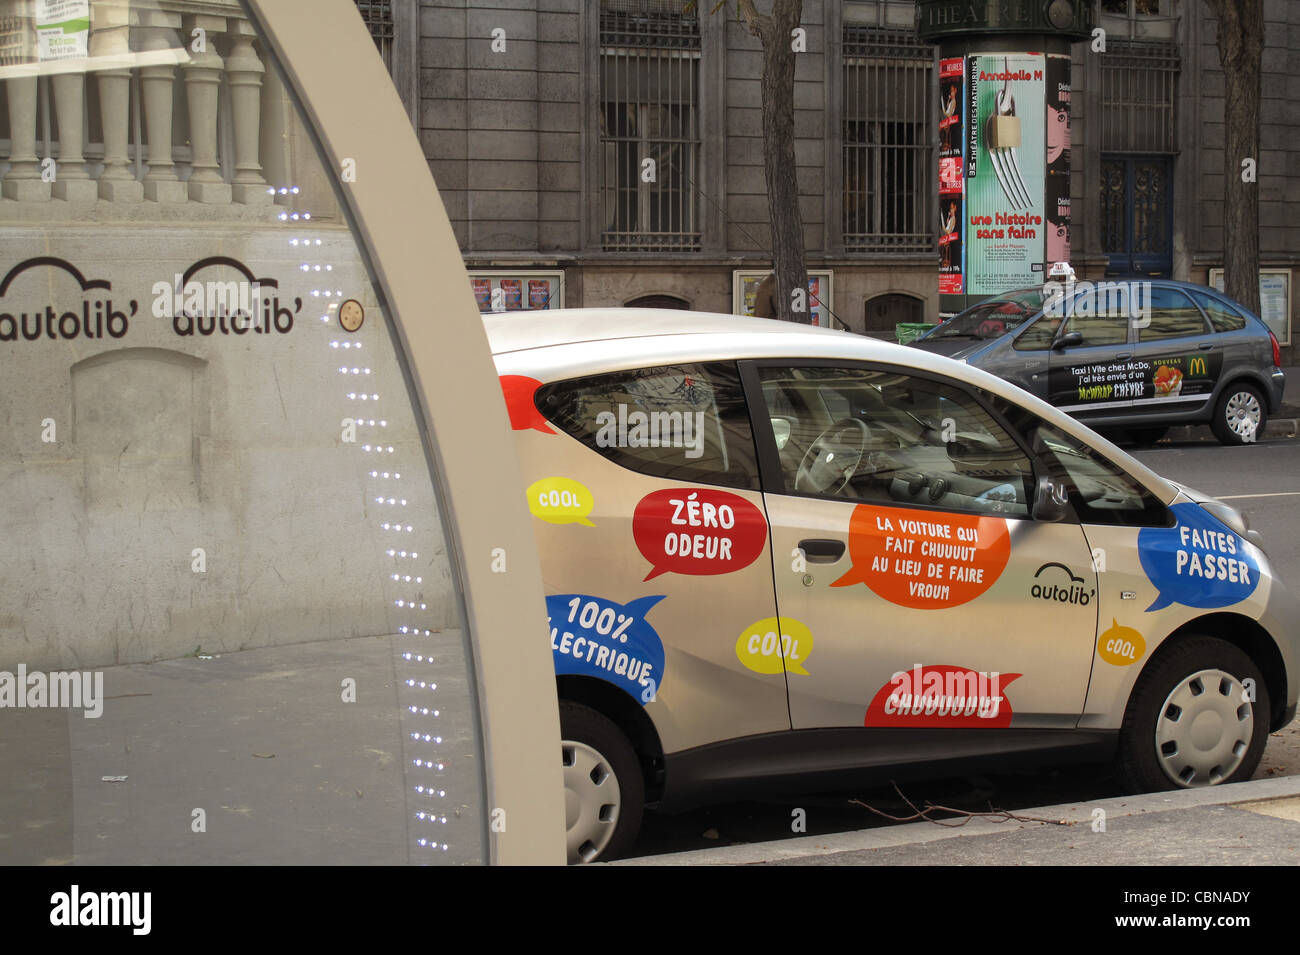 Autolib,electric car recharge at the base in the street,Paris,France - Stock Image